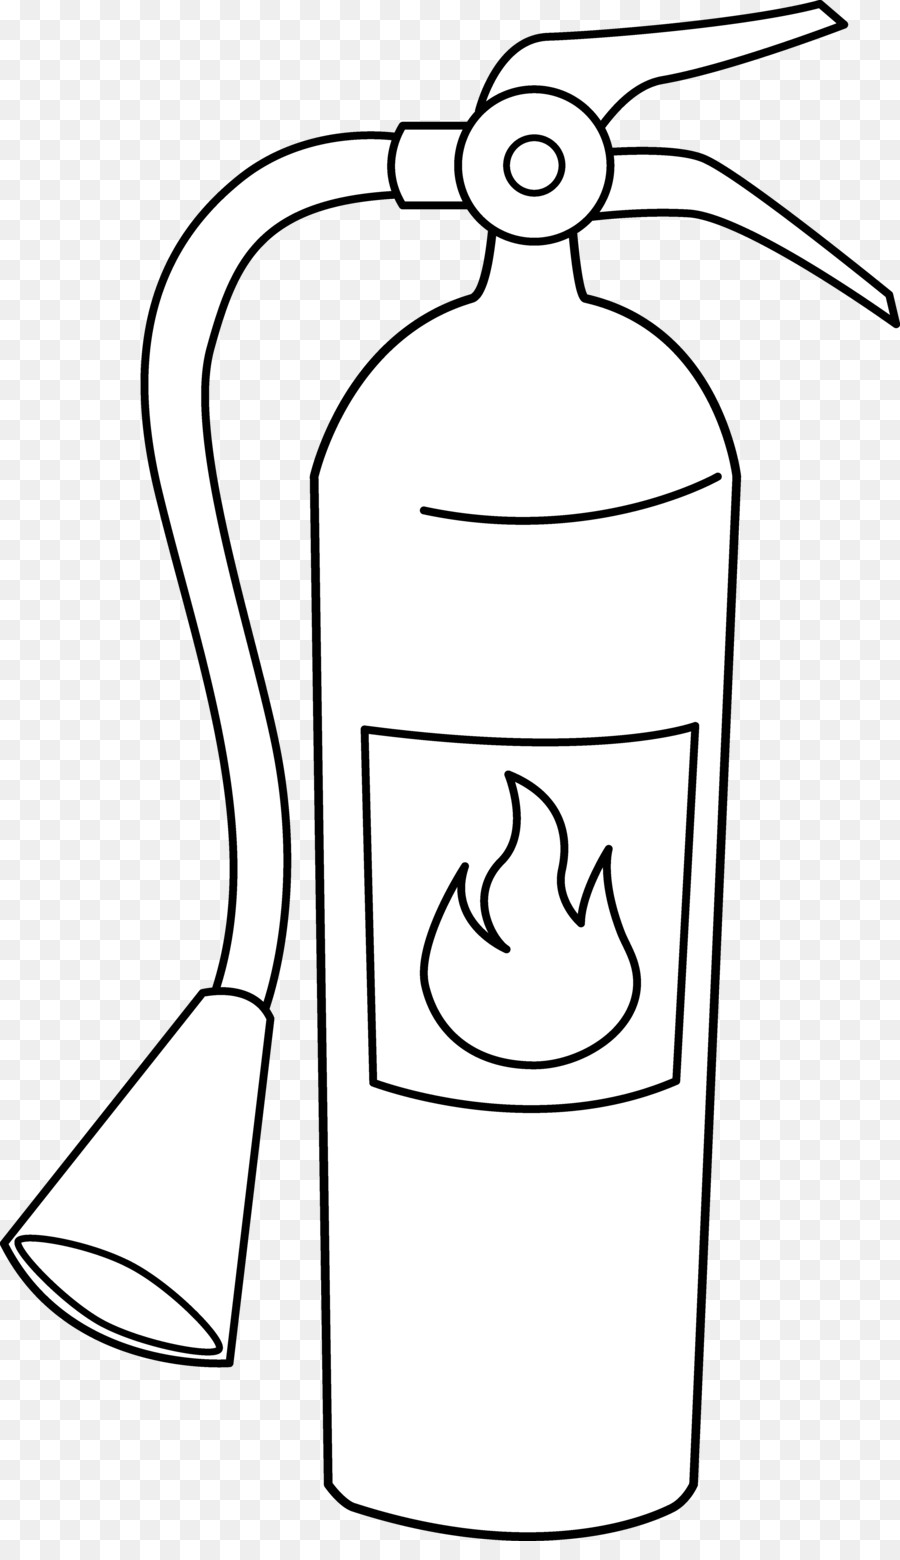 Fire extinguisher Coloring book Fire hydrant Clip art - Fire Line ...